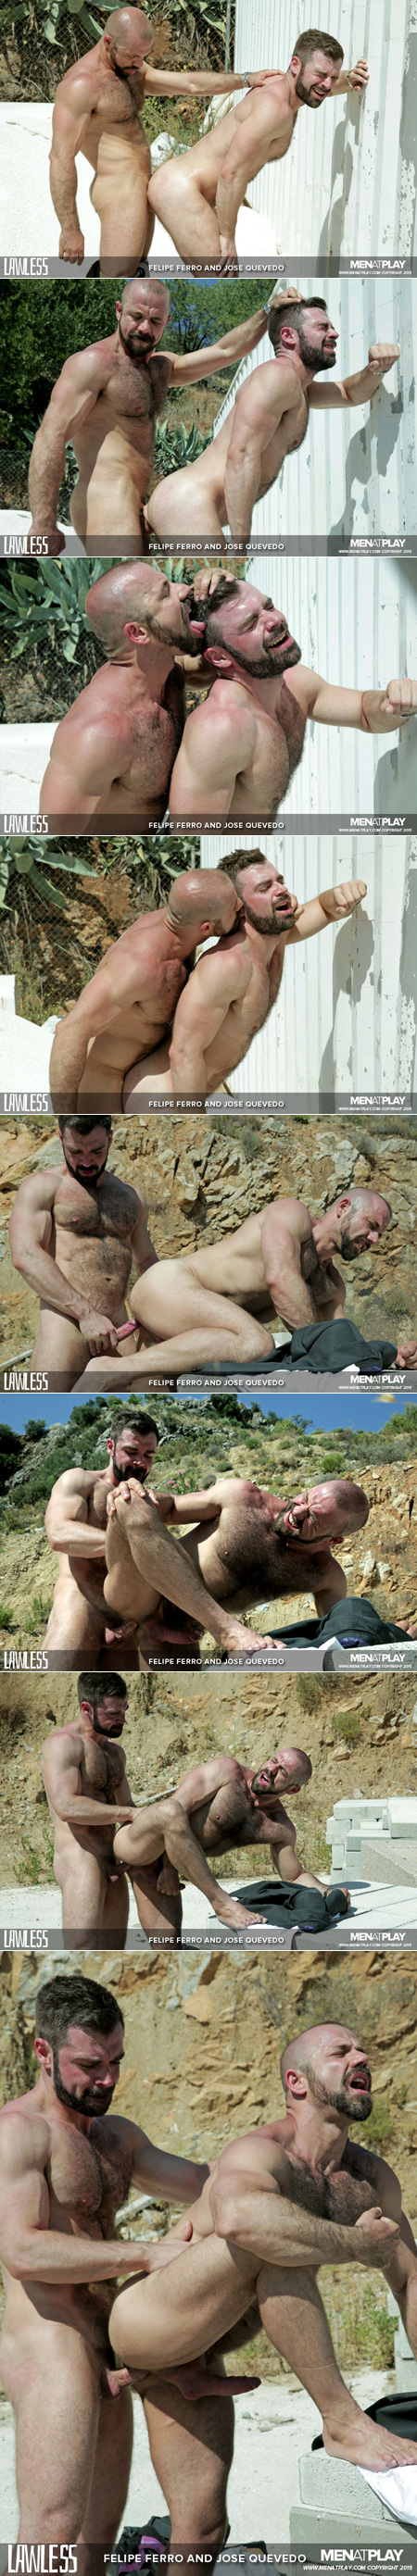 Hairy Latino muscle bears flip fucking outside in the desert sun.